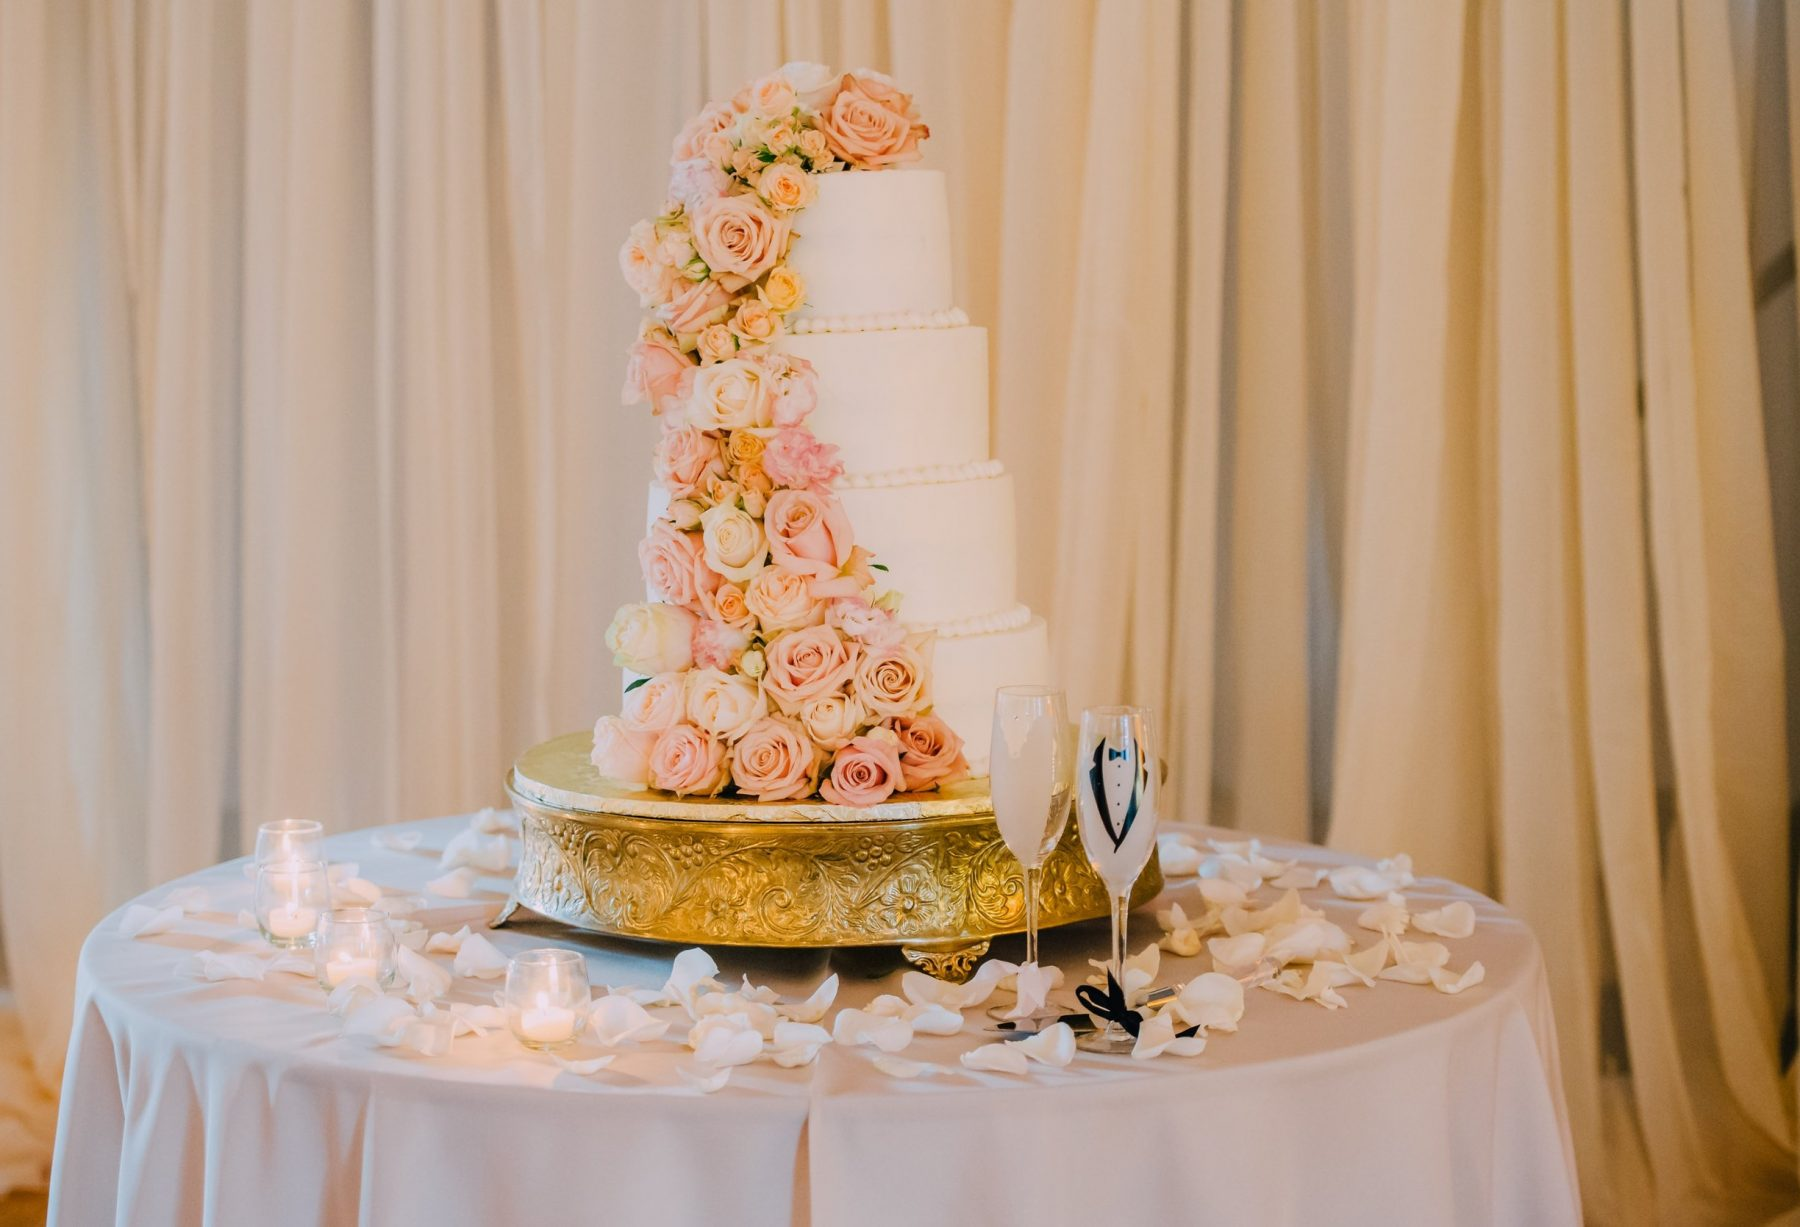 A wedding cake with champagne glasses